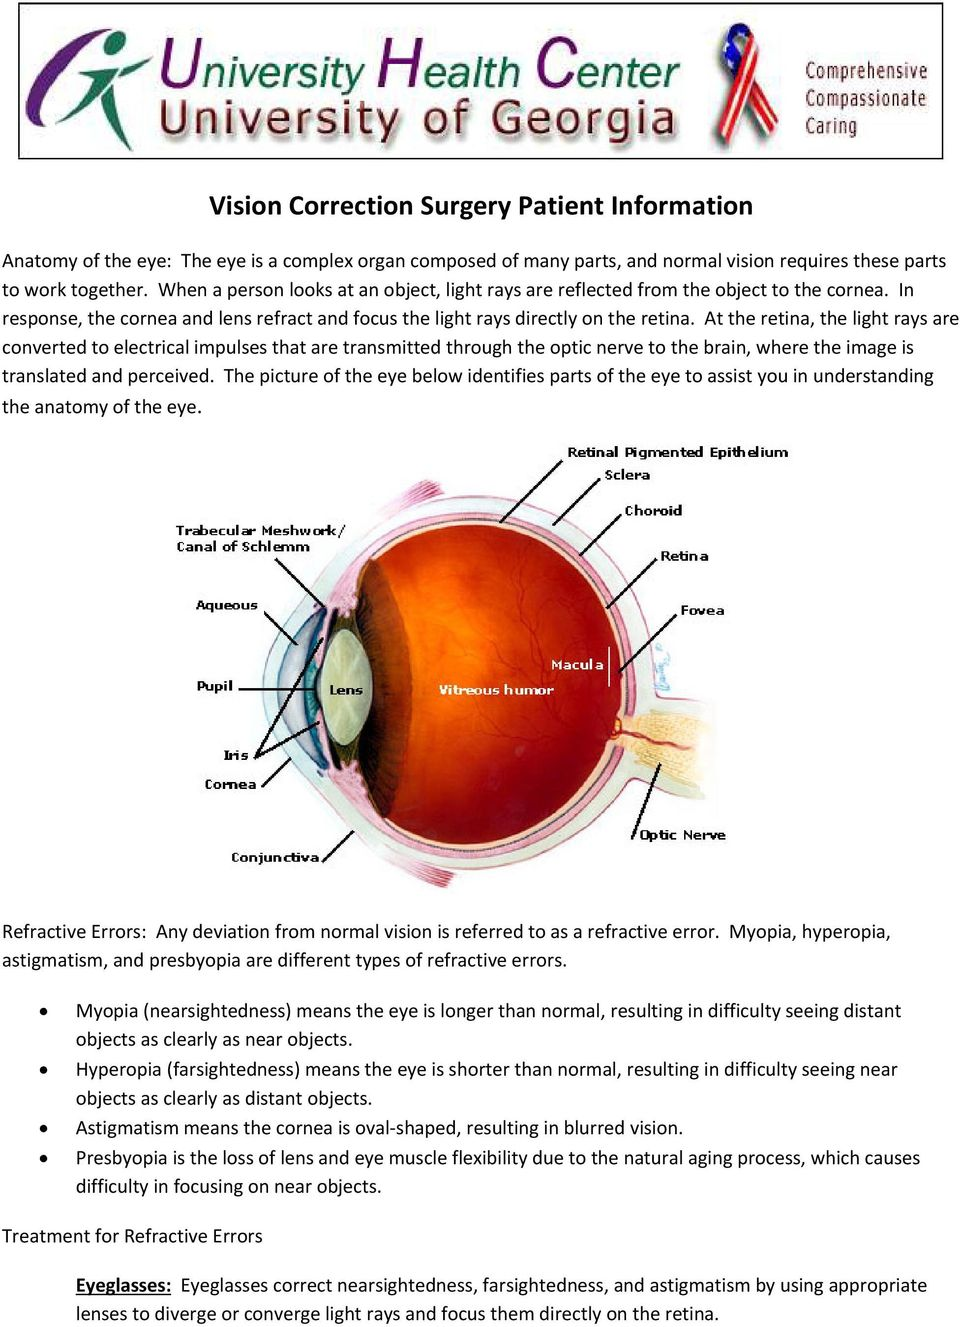 At the retina, the light rays are converted to electrical impulses that are transmitted through the optic nerve to the brain, where the image is translated and perceived.